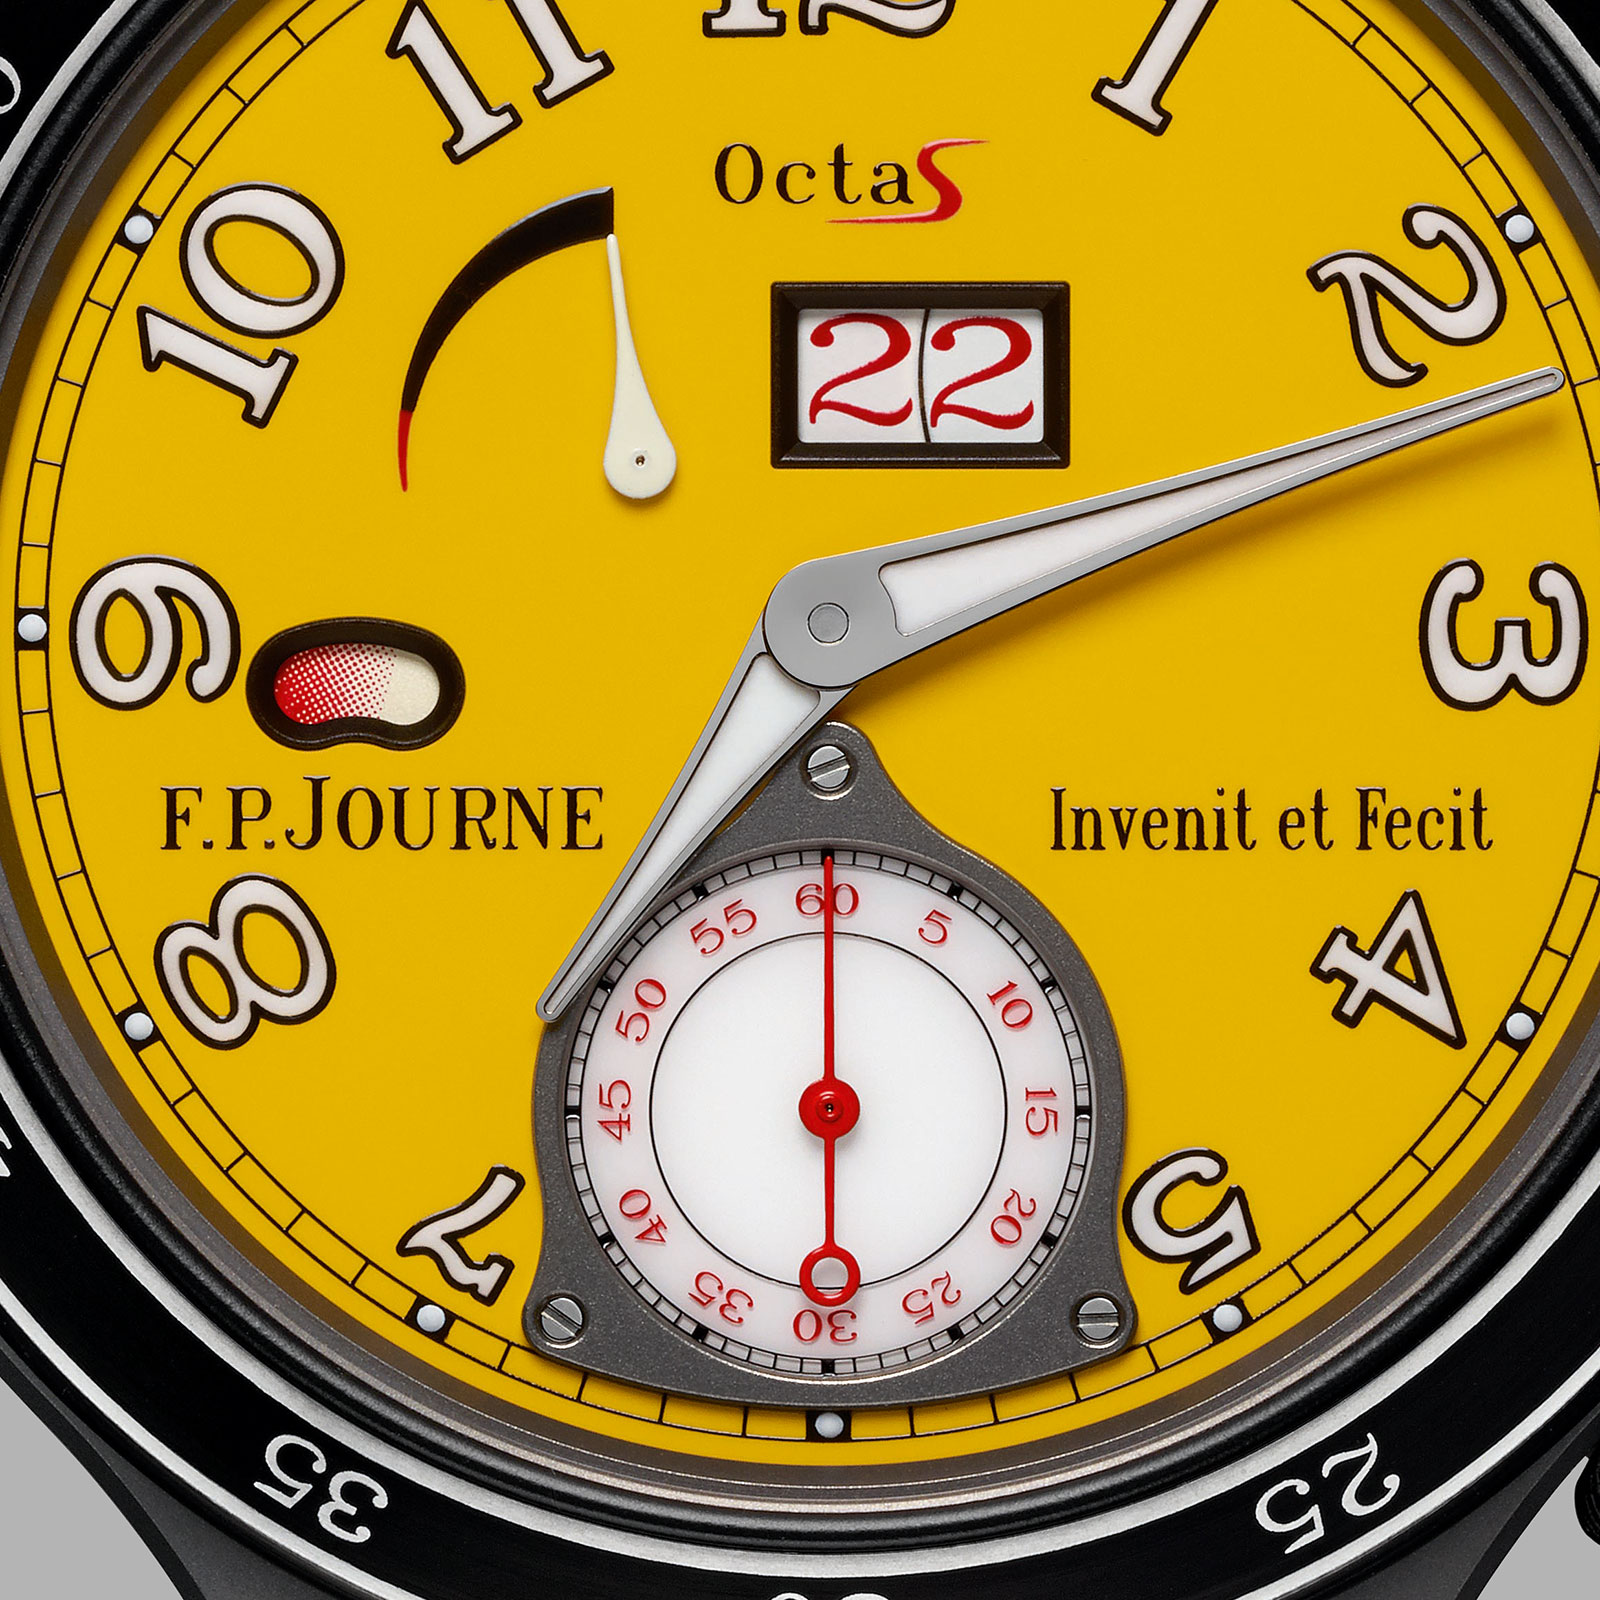 FP Journe Octa Sport yellow ARS2-2